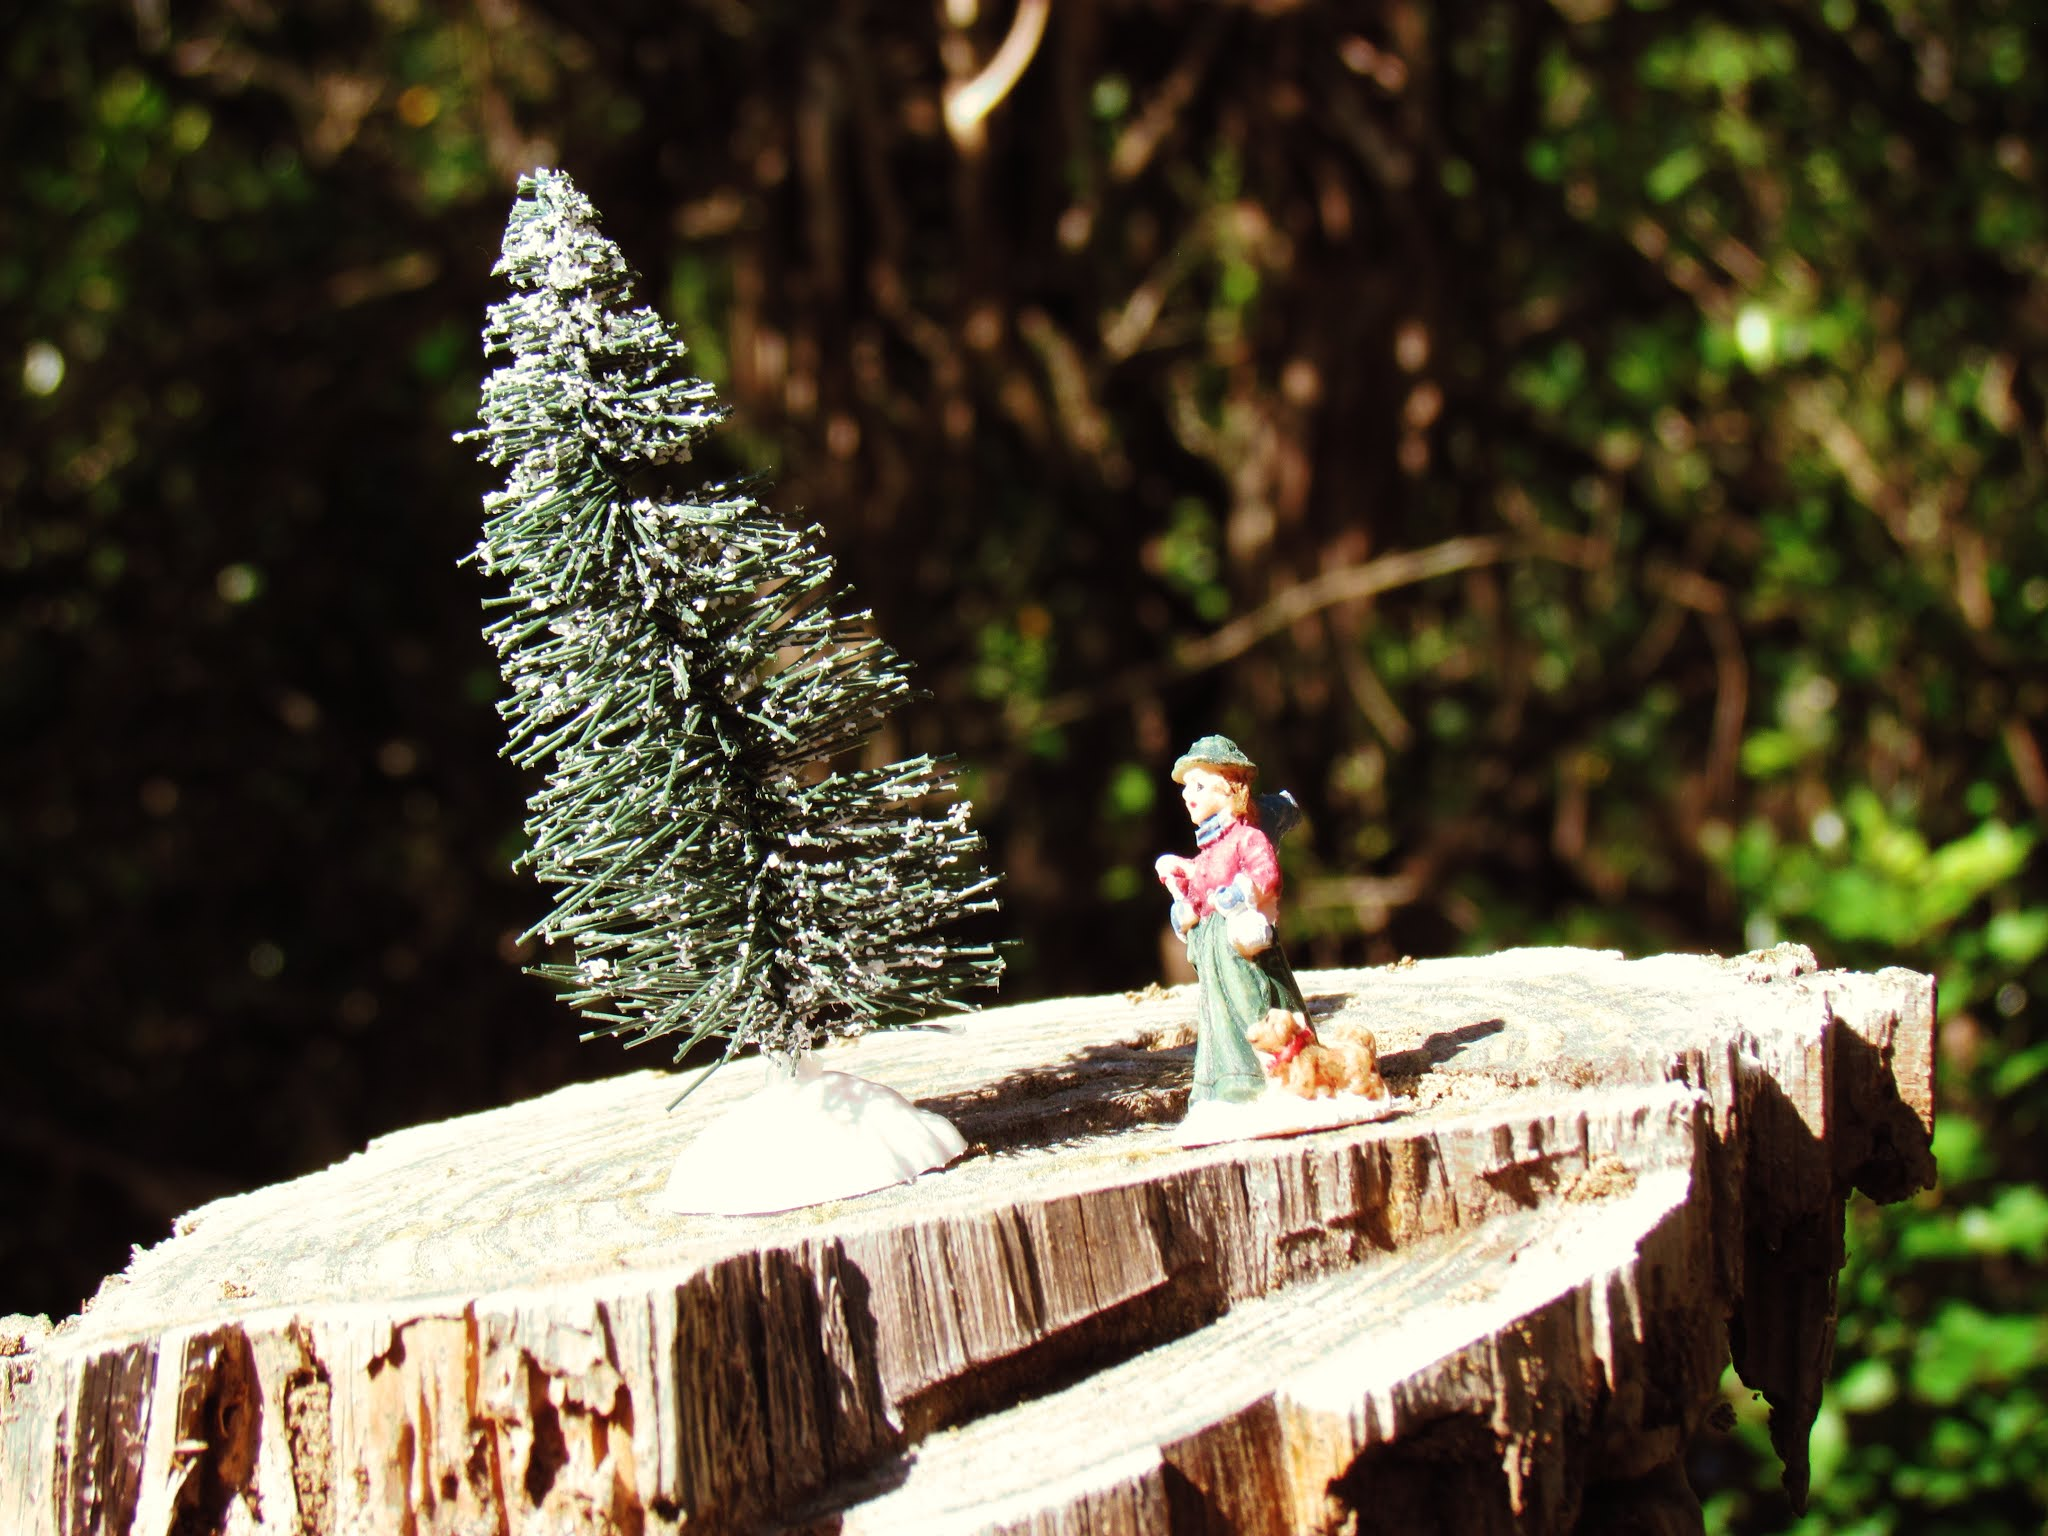 An old-fashioned Christmas spirit display with faux Christmas trees and figurines of Christmas carolers on wooden logs and tree stumps